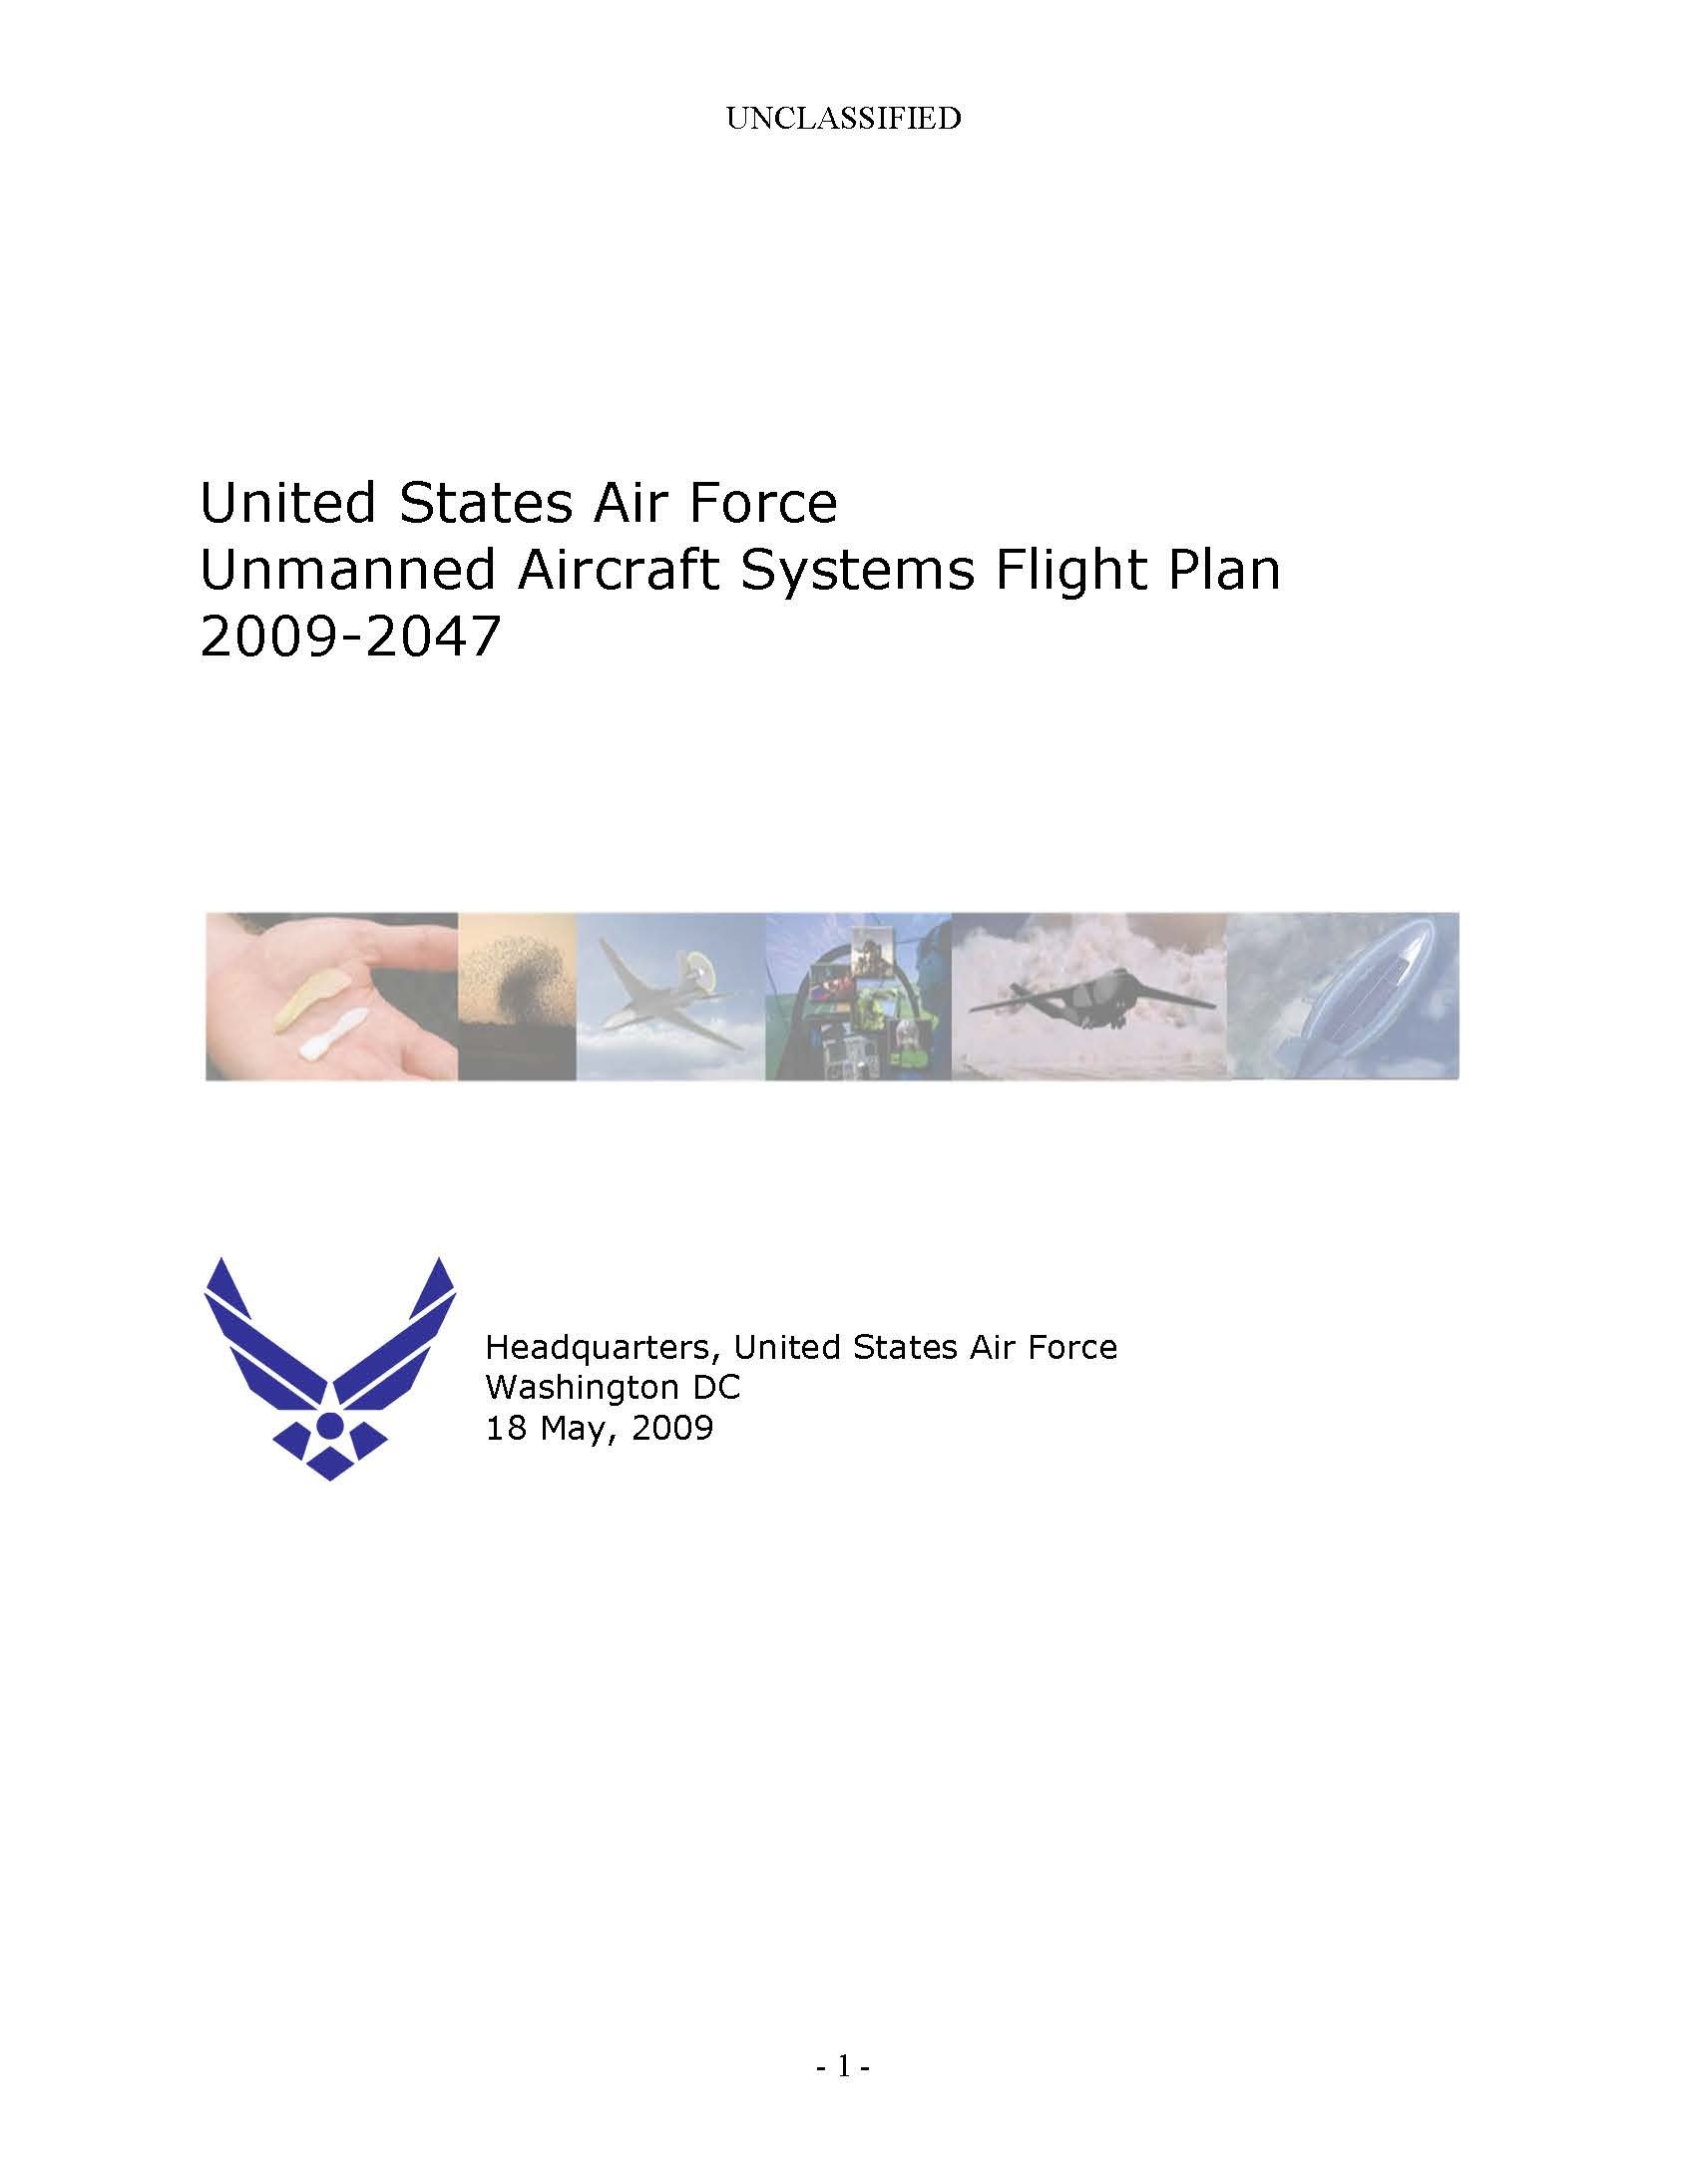 United States Air Force Unmanned Aircraft Systems Flight Plan 2009-2047 [Loose Leaf Publication. Some Color.] pdf